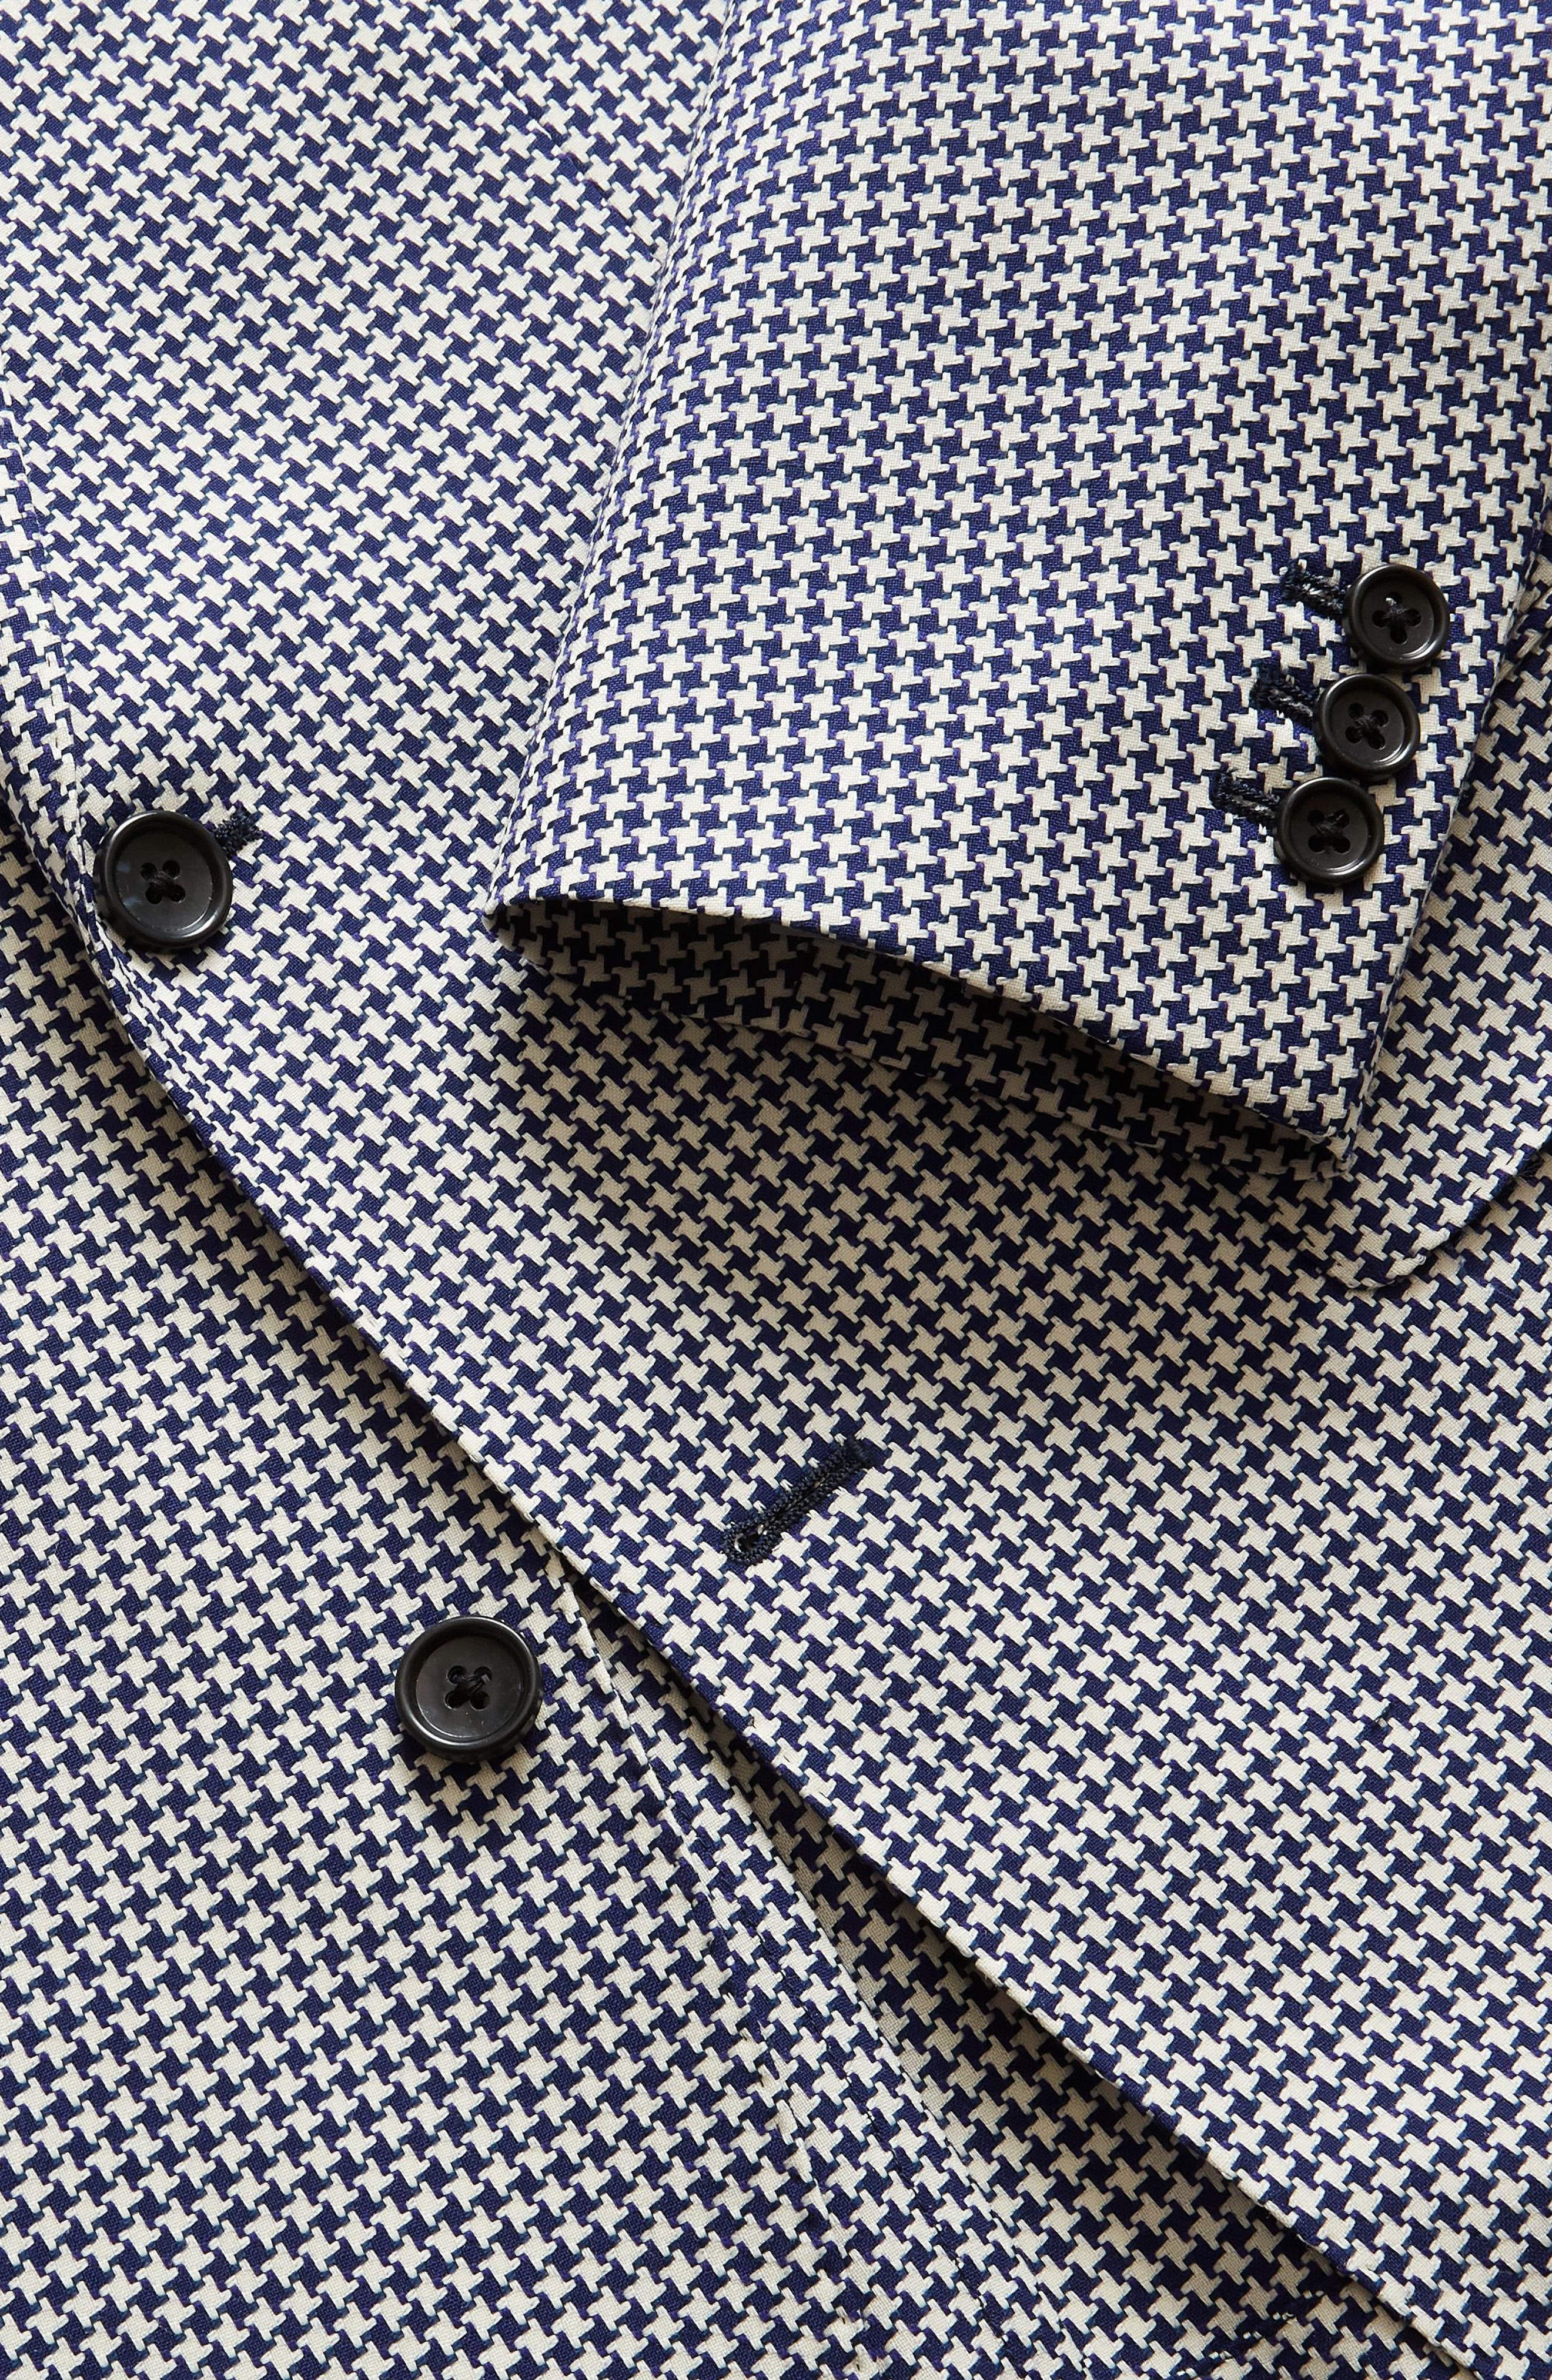 Capstone Slim Fit Houndstooth Wool Sport Coat,                             Alternate thumbnail 4, color,                             Navy White Houndstooth